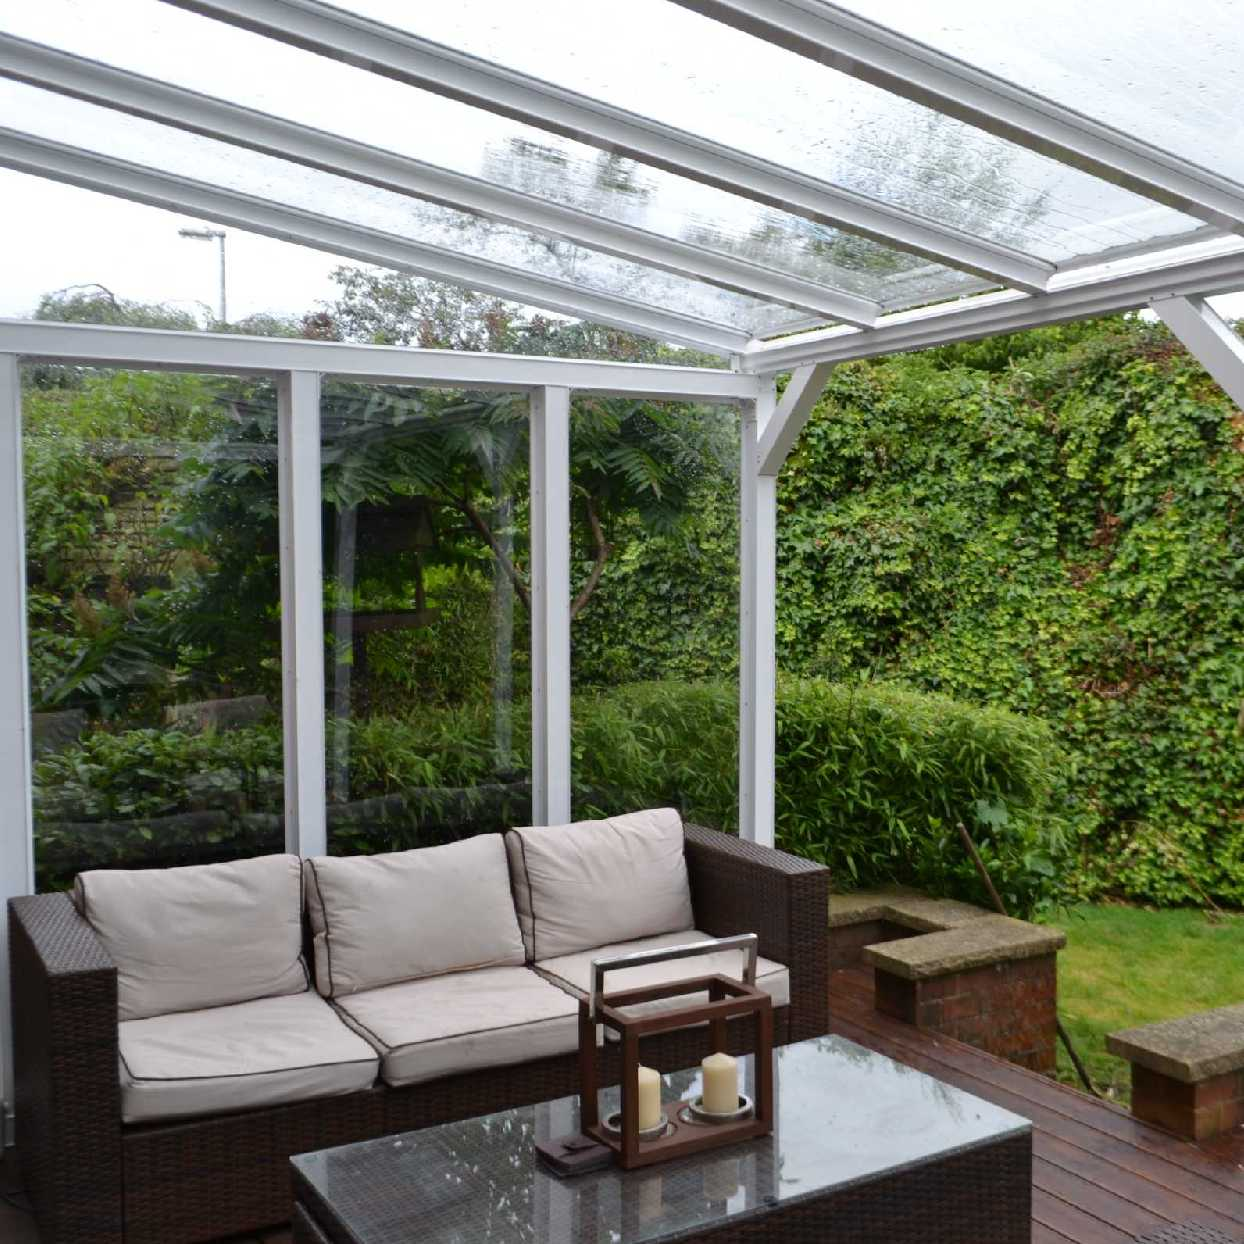 Great selection of Omega Smart Lean-To Canopy with 16mm Polycarbonate Glazing - 9.1m (W) x 4.5m (P), (5) Supporting Posts